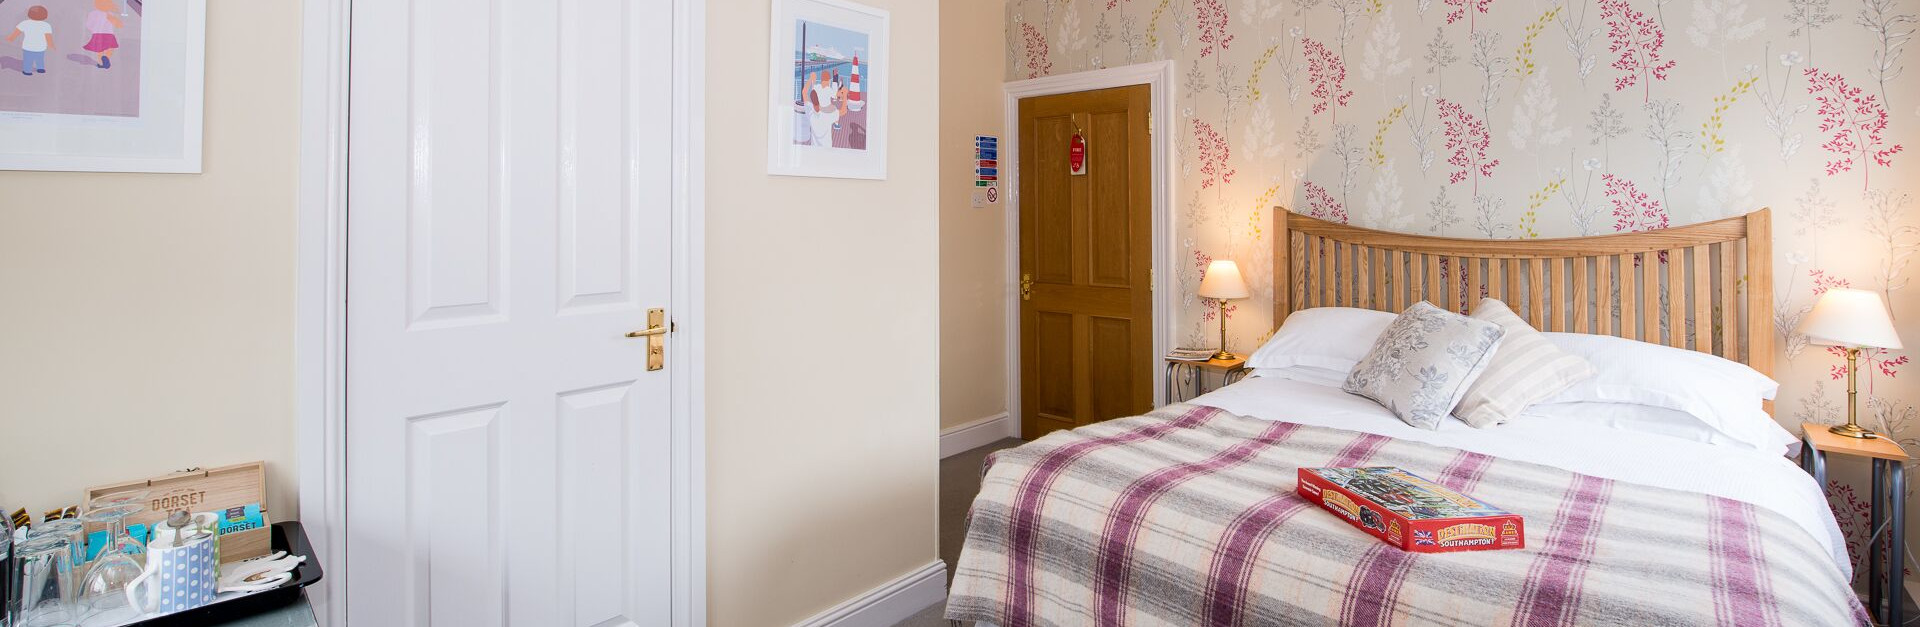 Southampton Guest Lodge Rooms Available